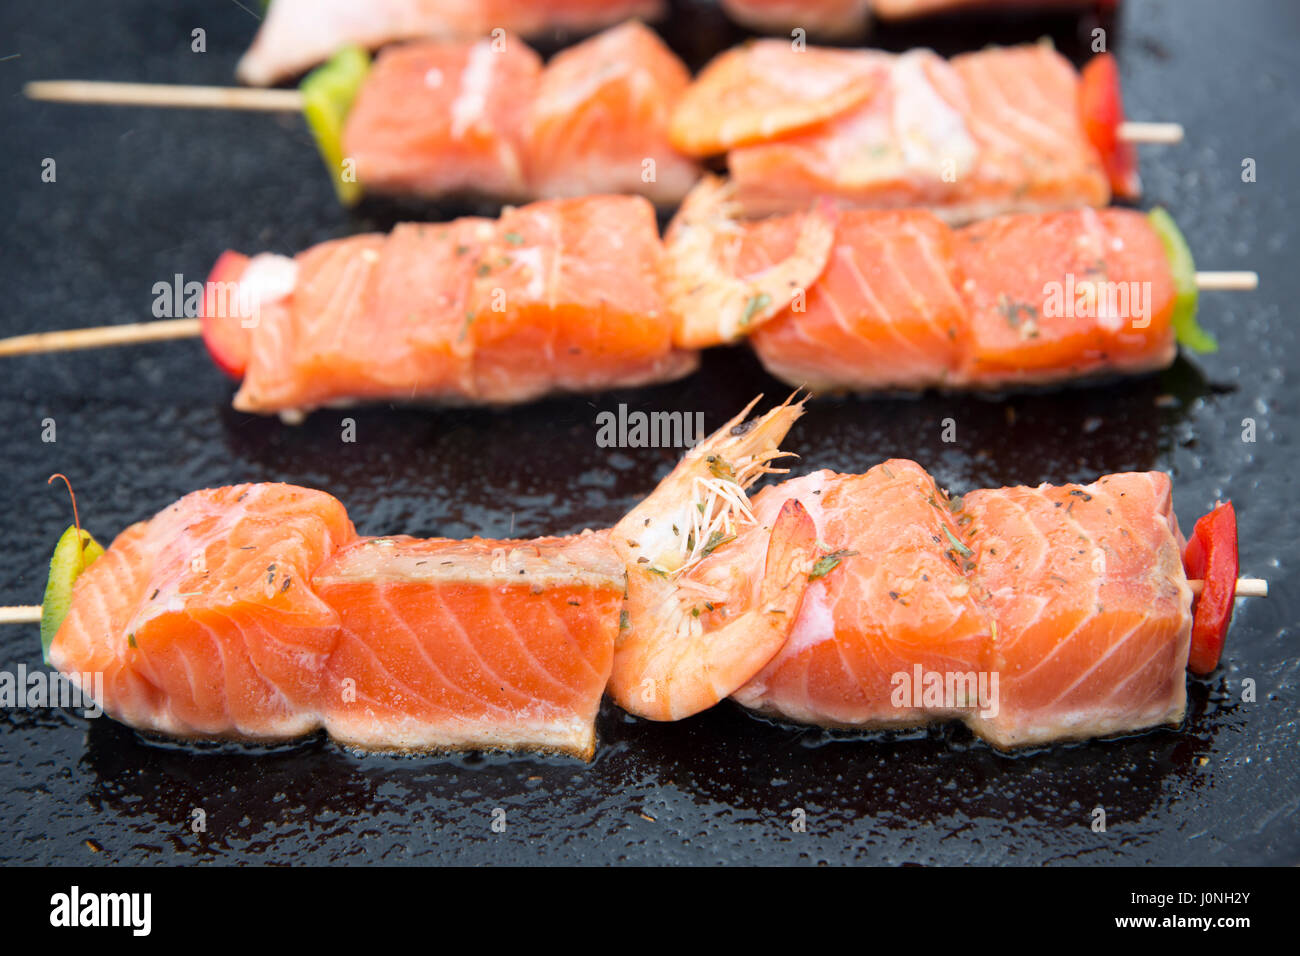 Grilled Salmon Fillets And Prawns Healthy Fast Food Cooked On Griddle For  Sale At Street Market